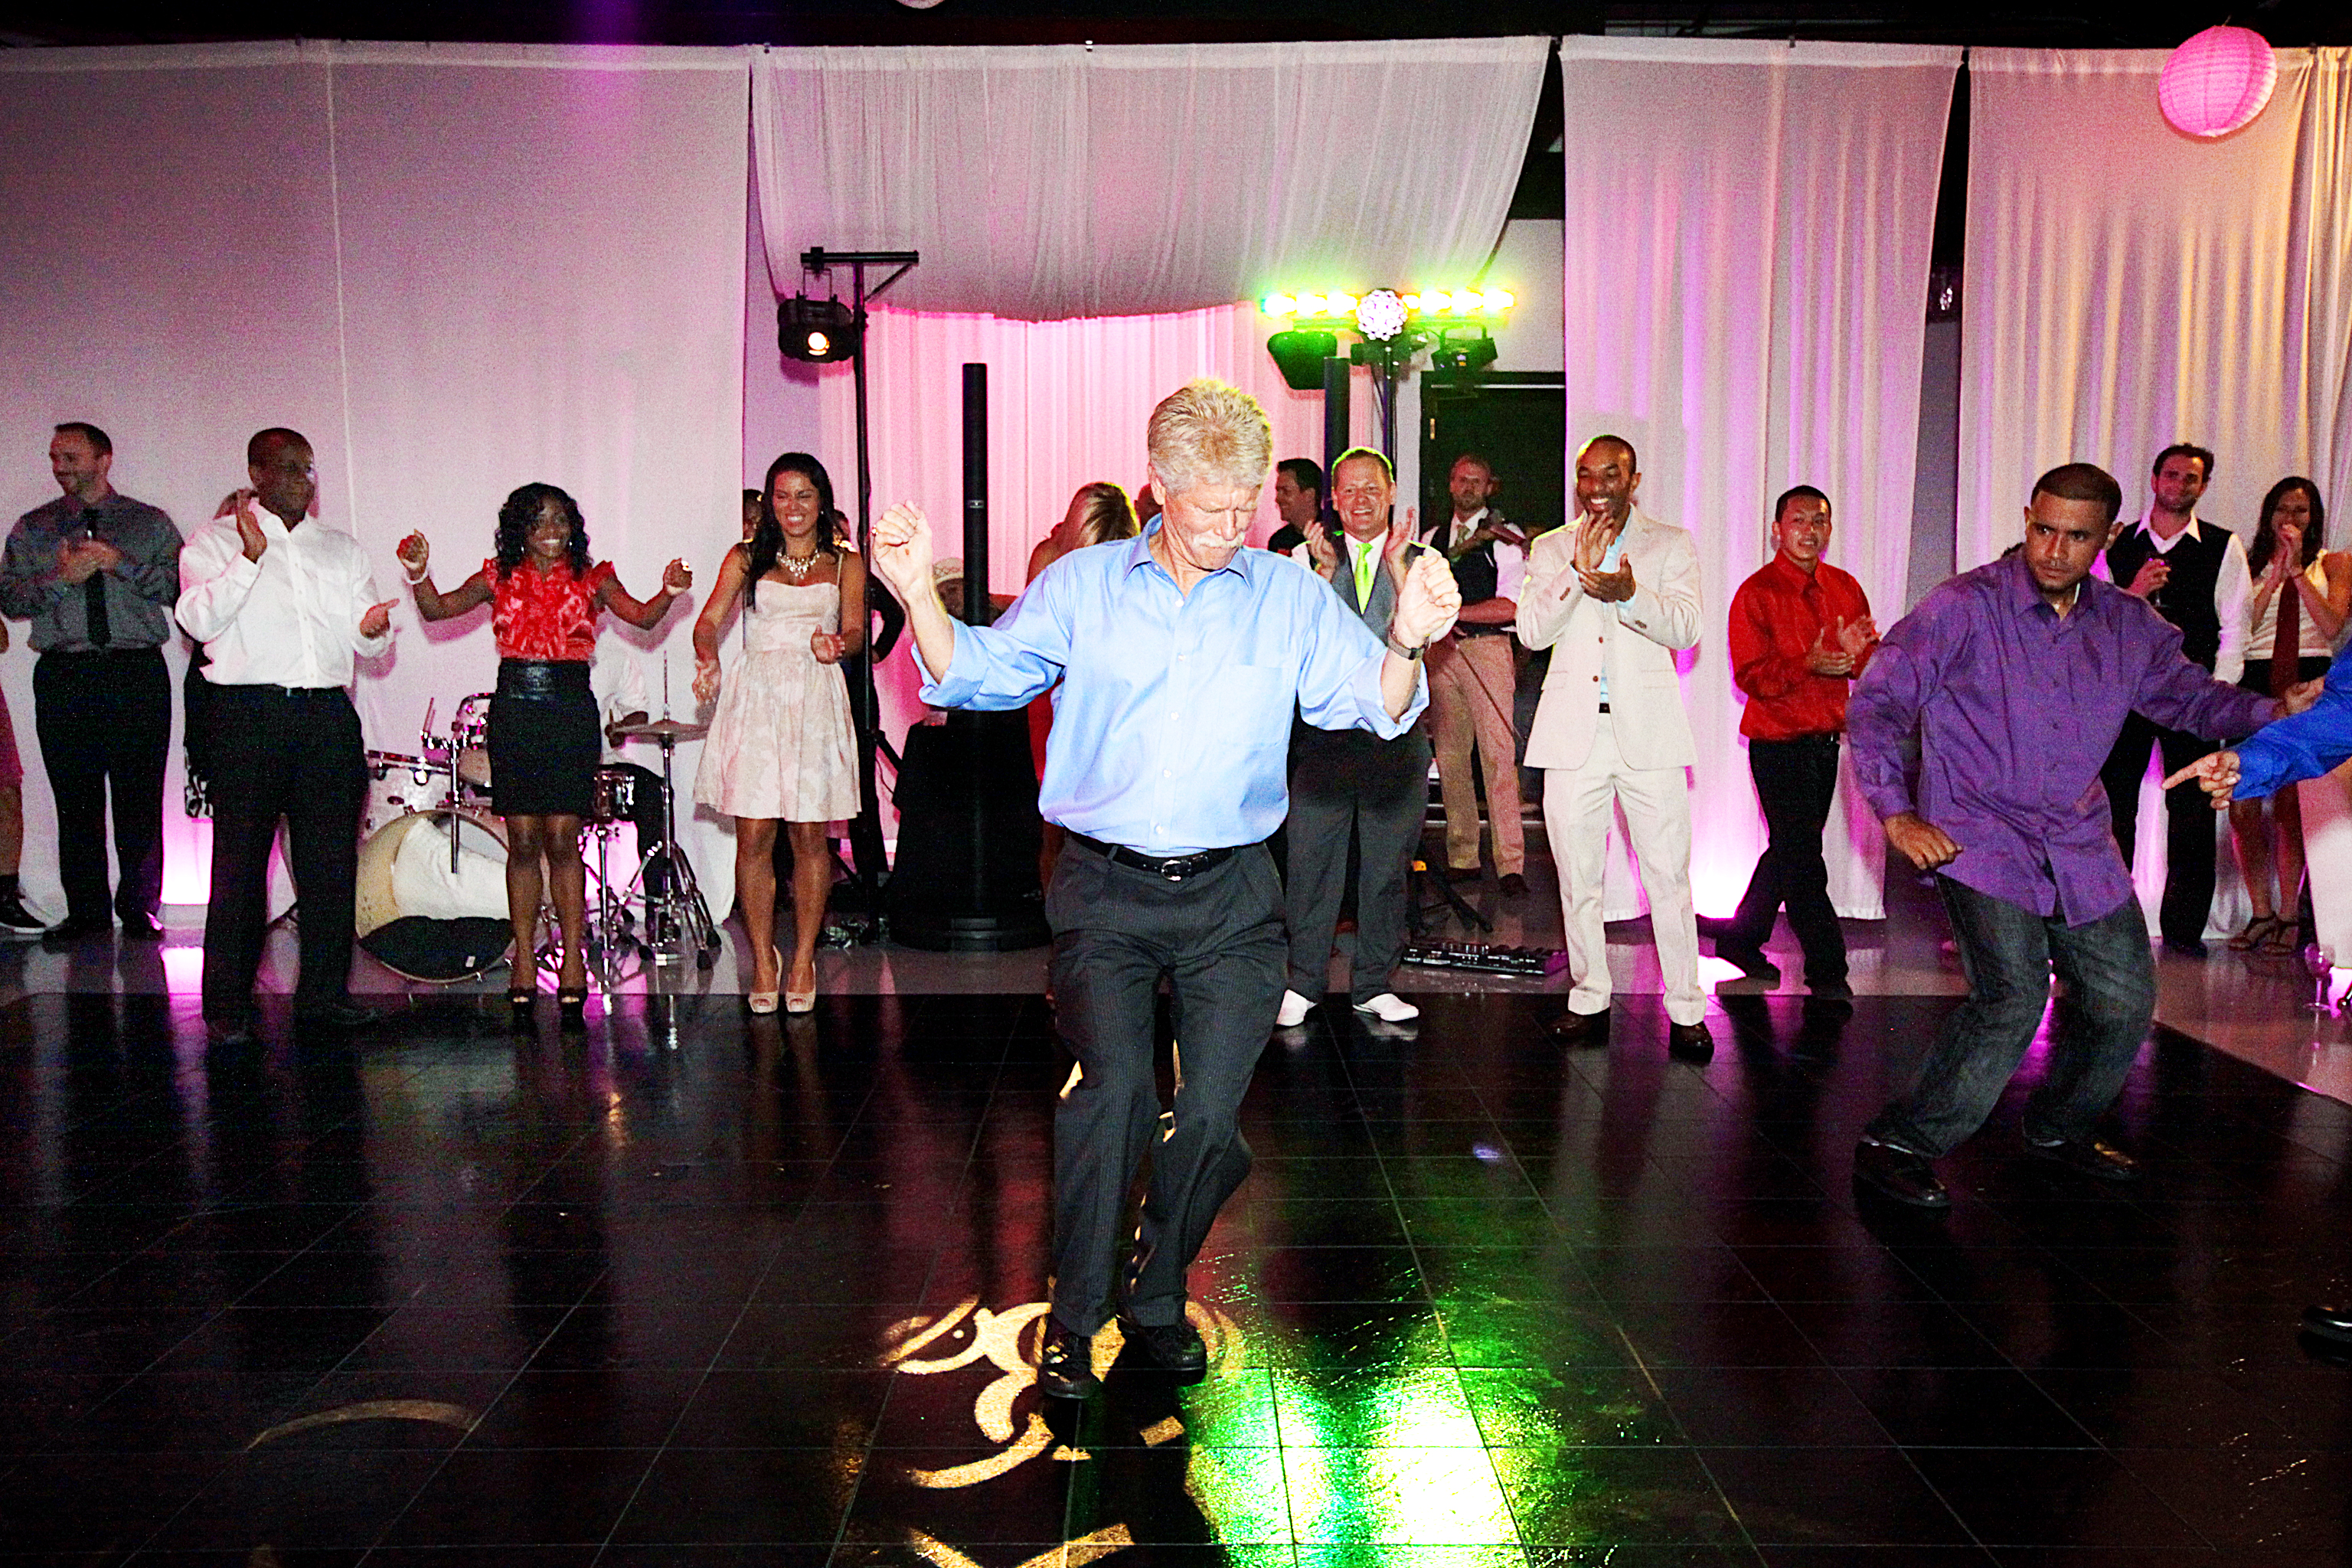 Father of the Groom dances at wedding